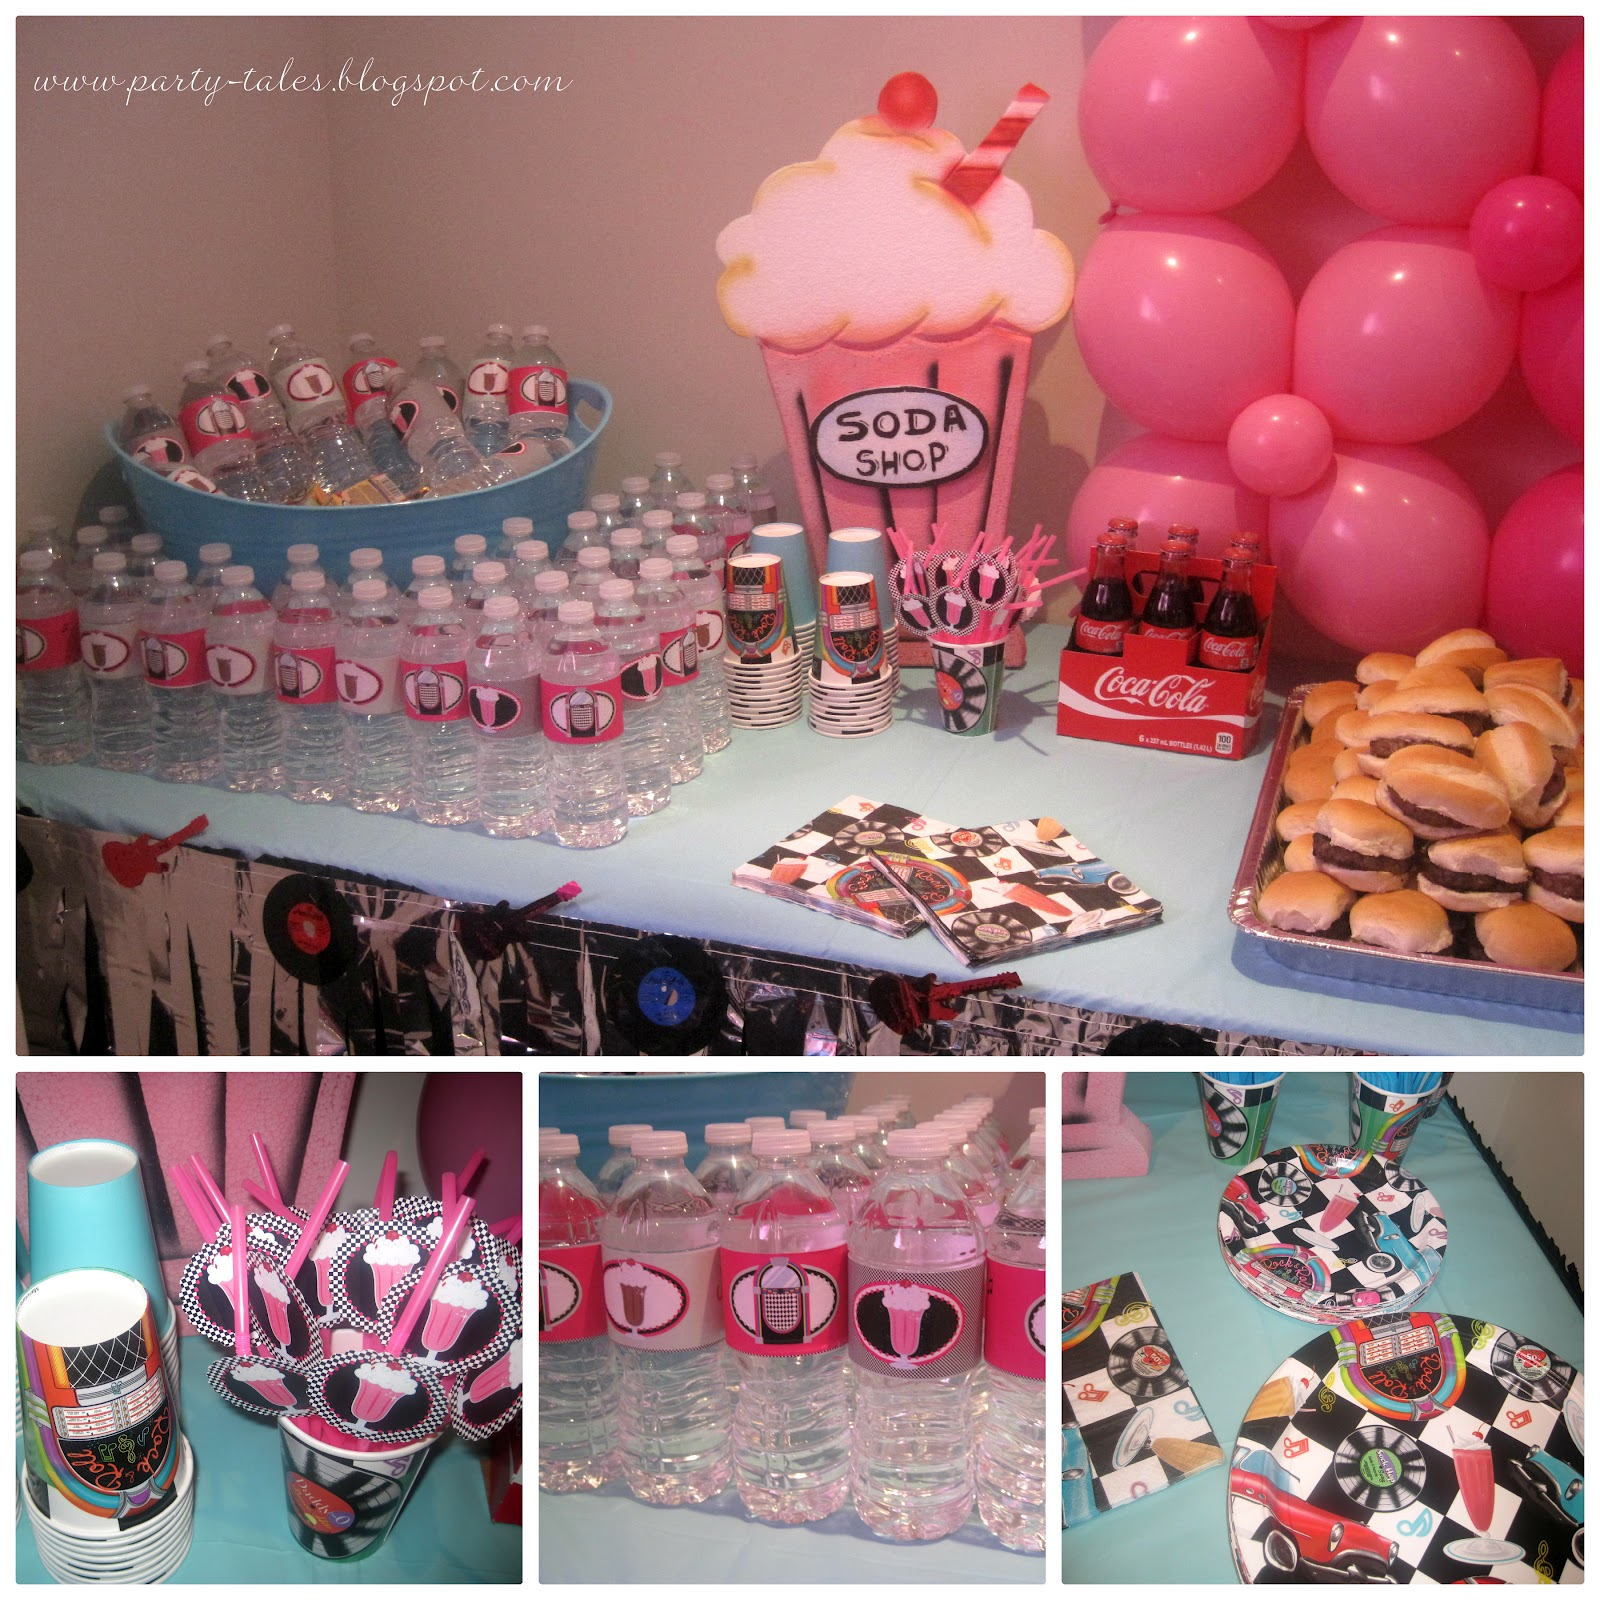 Party tales birthday party 50 39 s diner sock hop part 2 for 50s party decoration